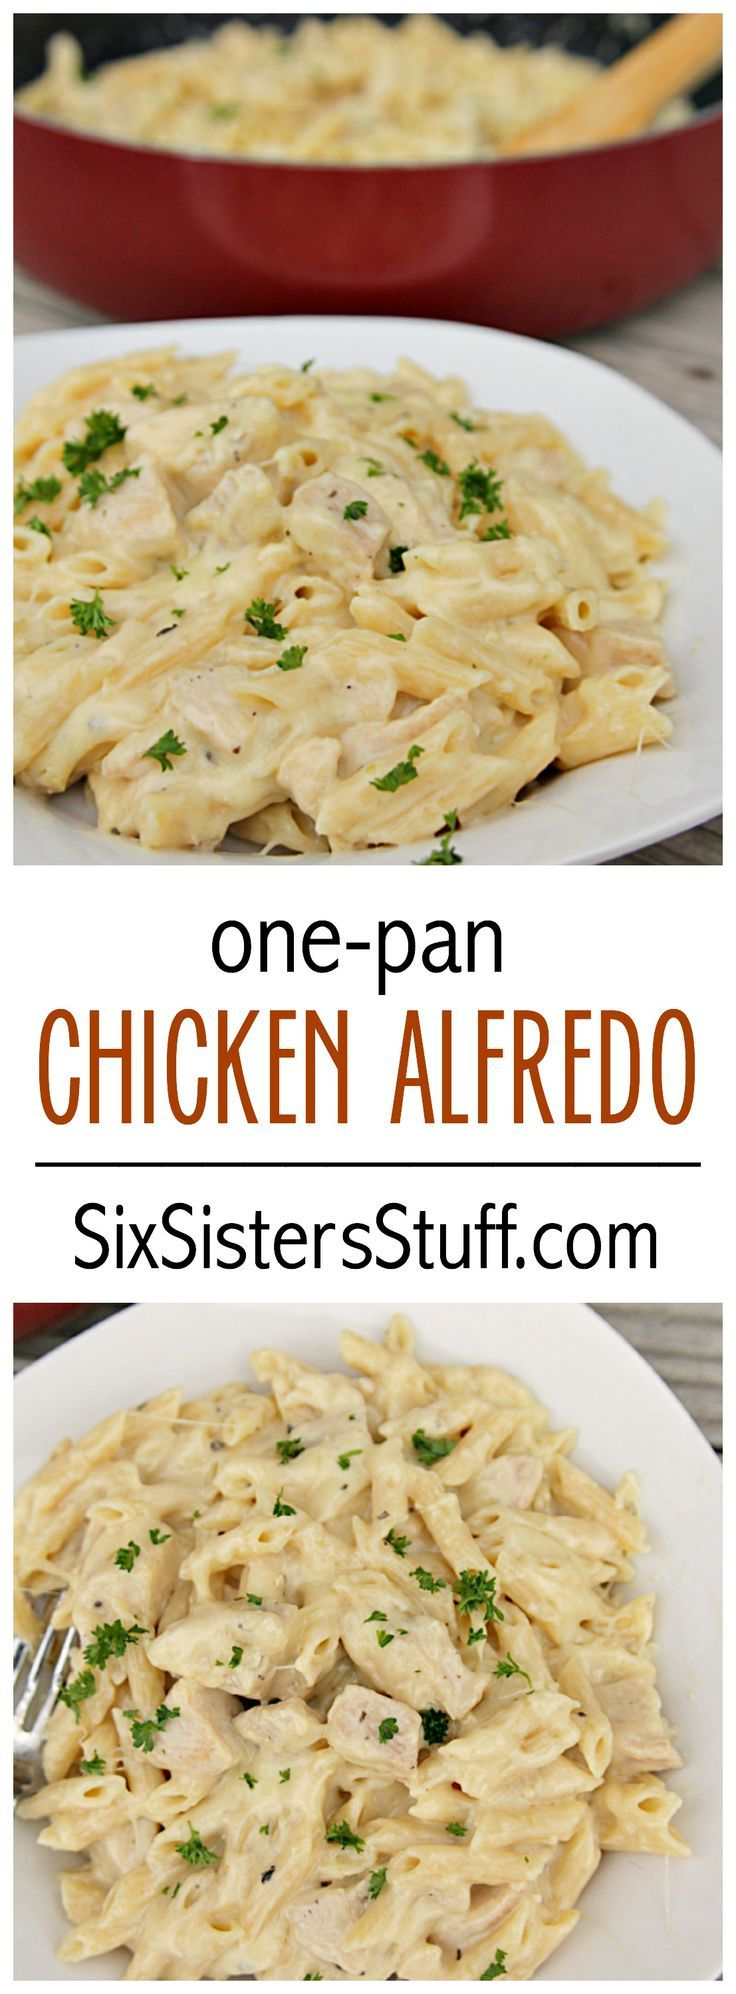 One-Pan Cheesy Chicken Alfredo on SixSistersStuff.com  This is wonderful! I added 1T. Italian Seasoning and used 2 Cups Parmesan cheese. Rose